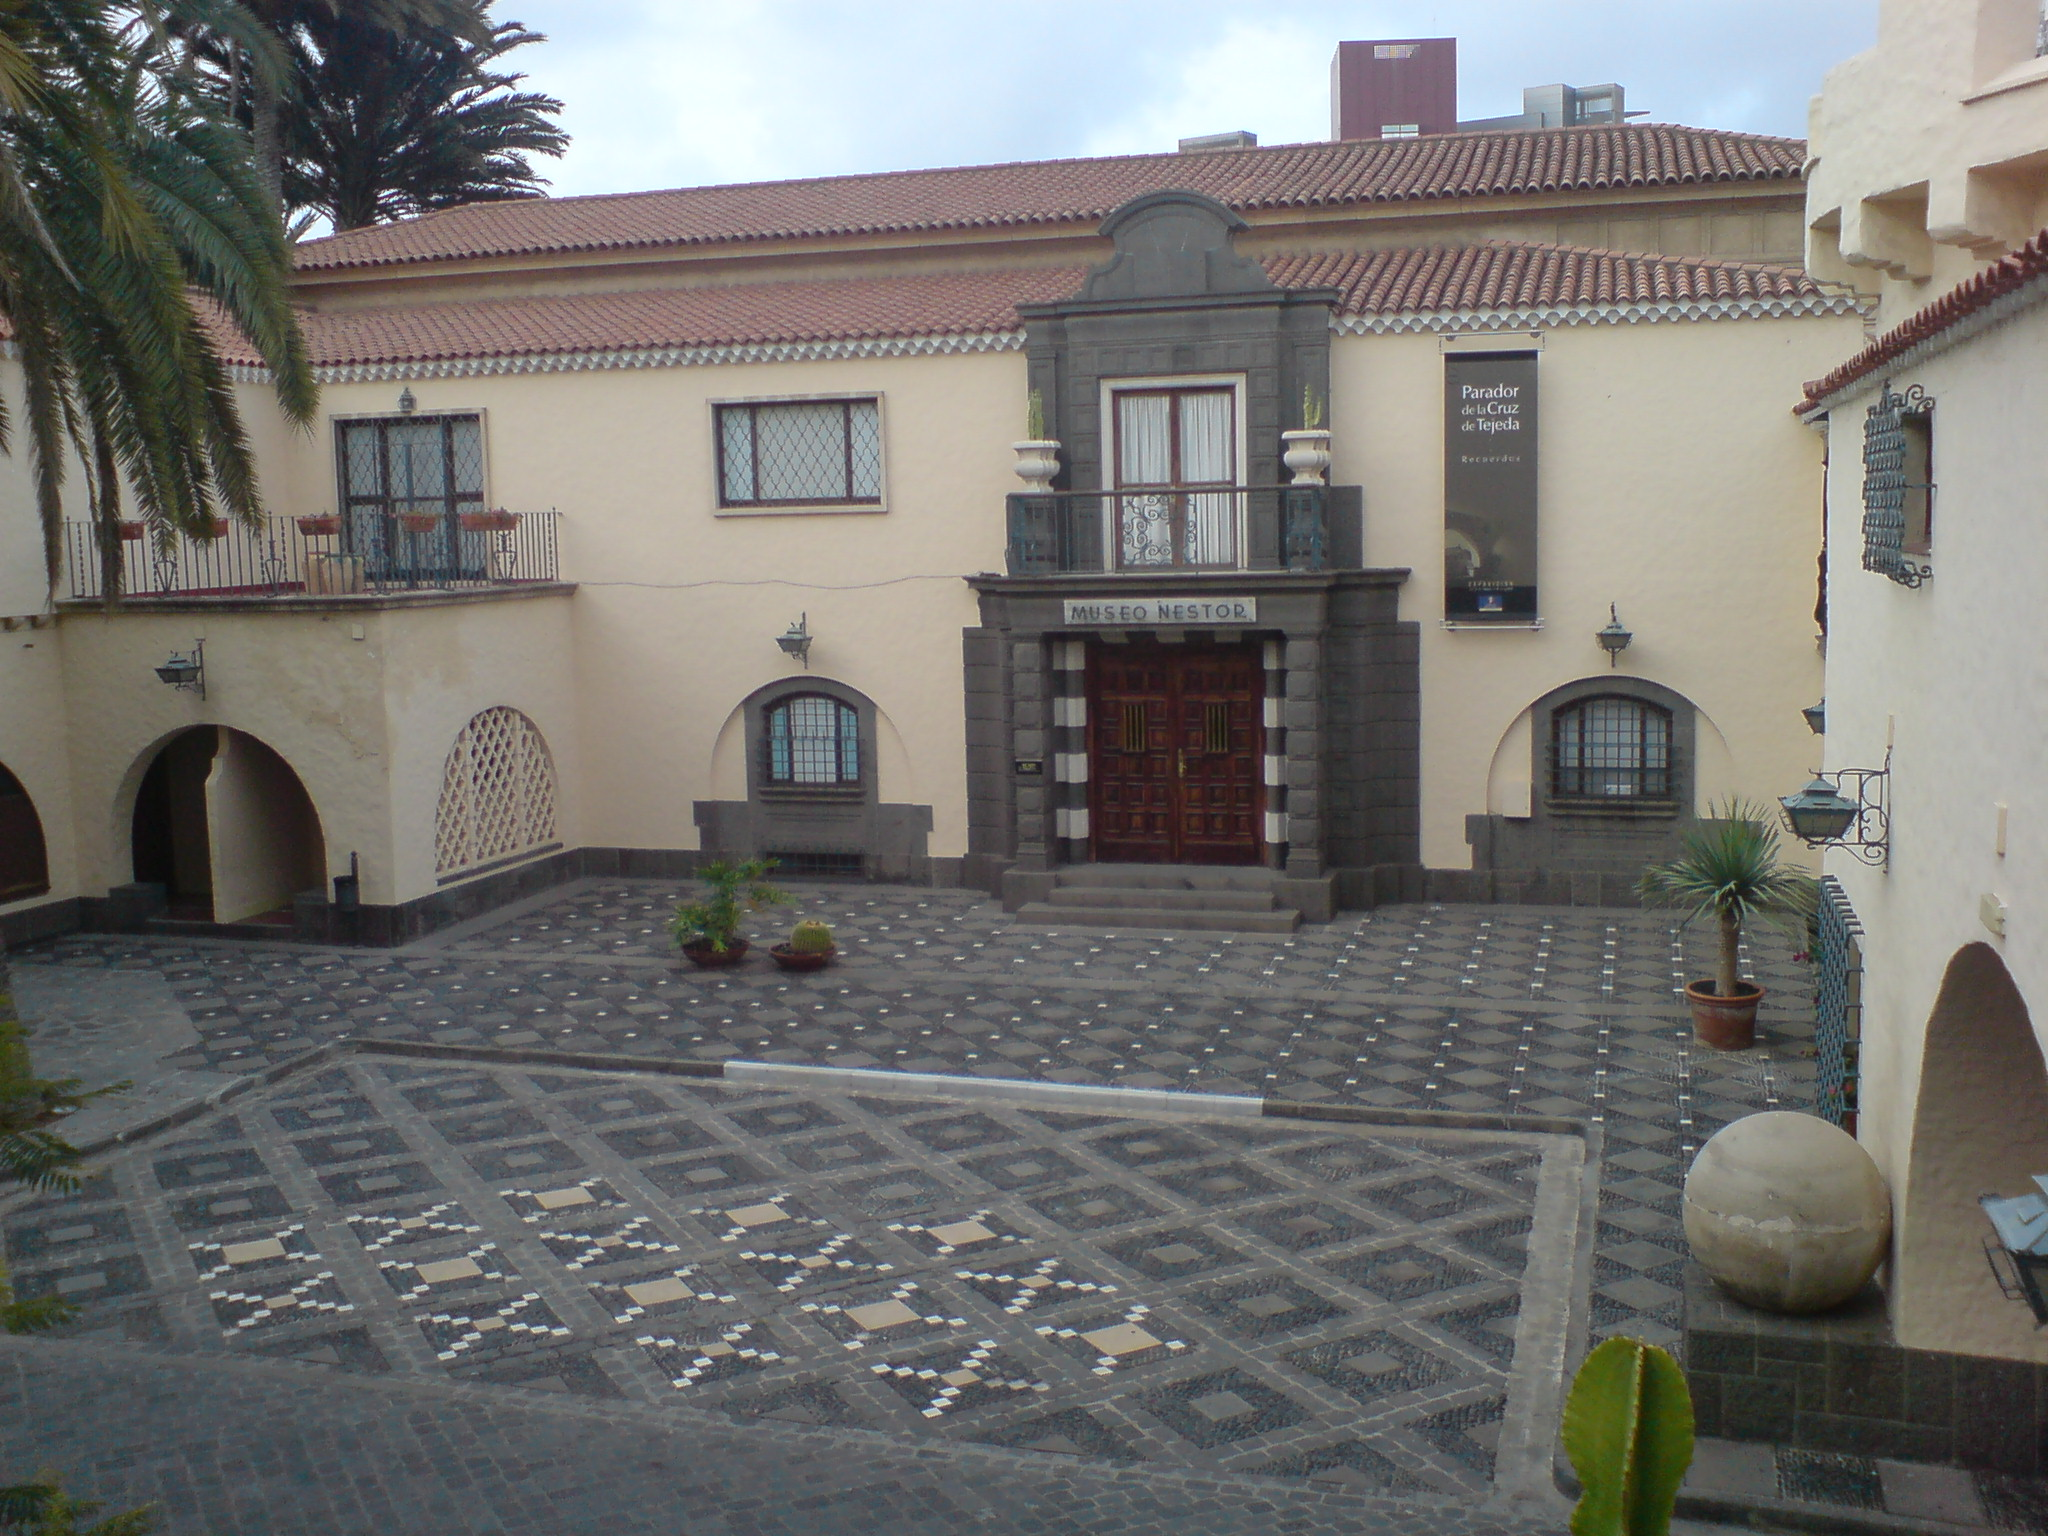 las palmas de gran canaria latin dating site Las palmas de gran canaria (377,000 inhabitants) was founded in 1476 by the castilian conquerors and conserves part of its historical old town,dating back to the fifteenth century (the districts of vegueta and triana.